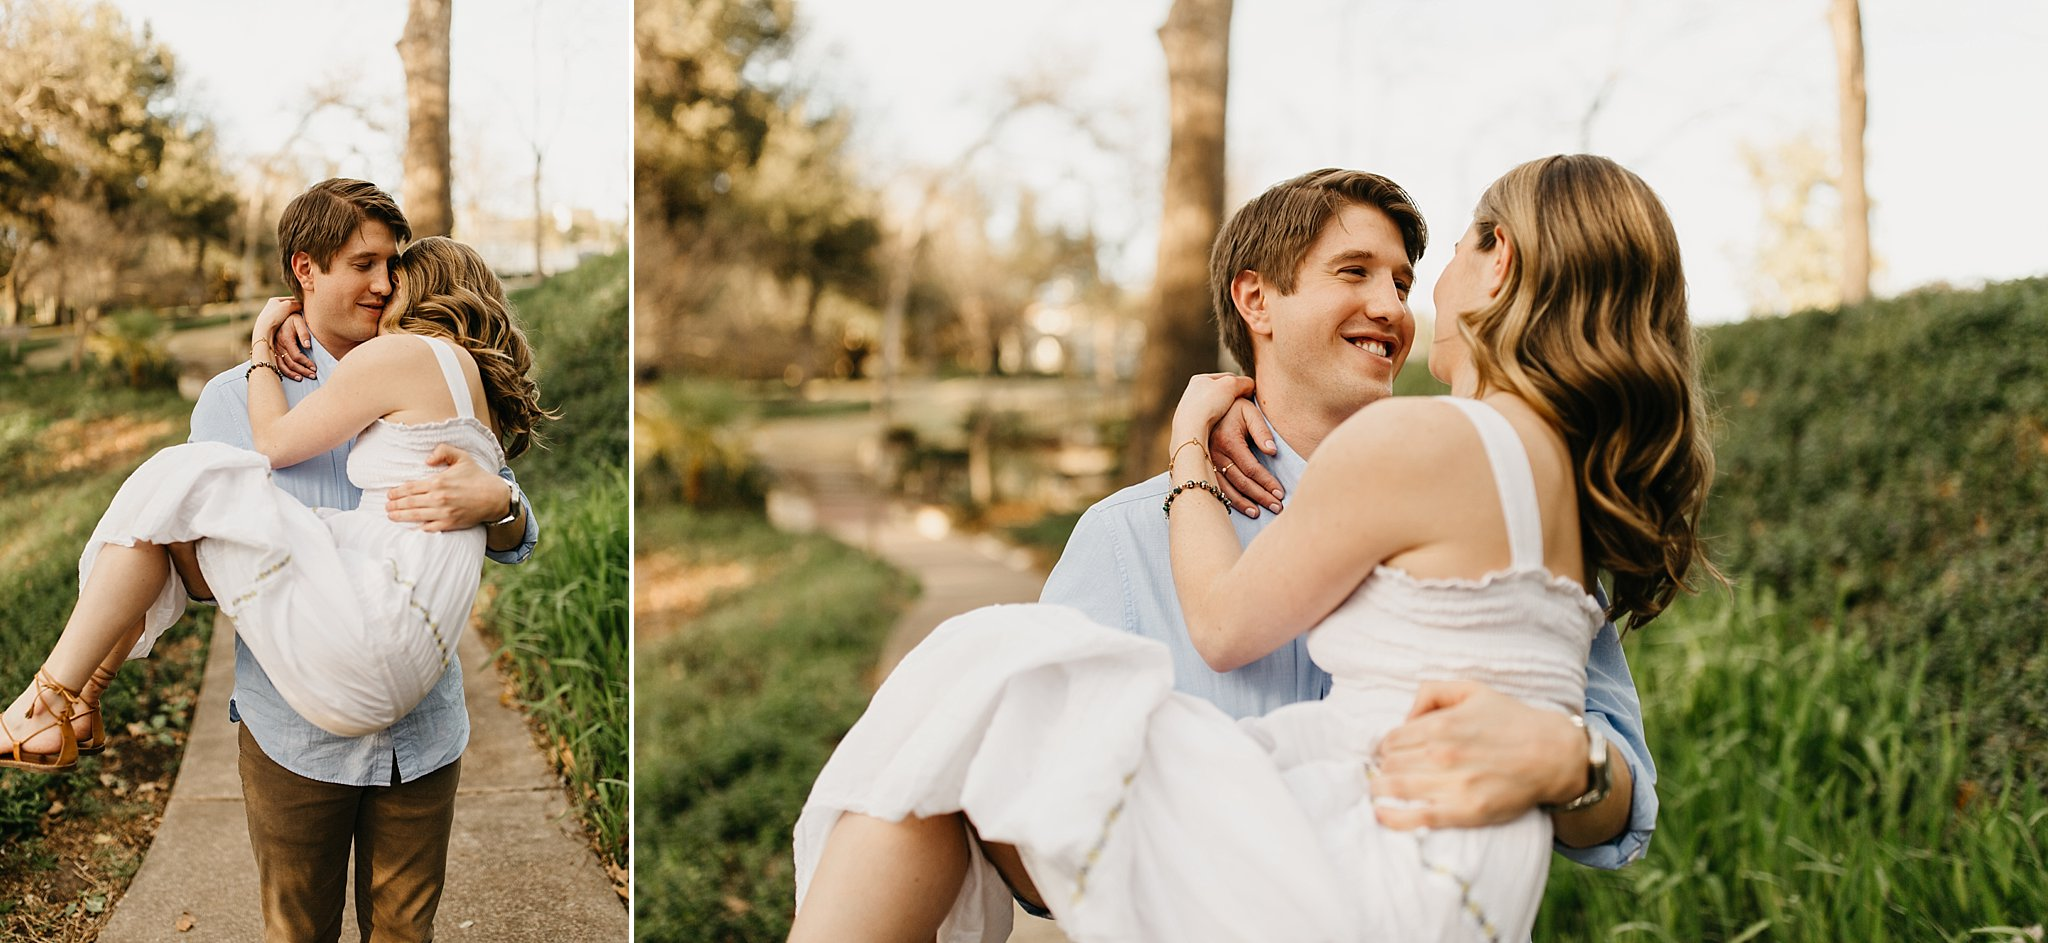 Wilderlove Co_Dallas Texas_Engagement Session_Highland Park_Romantic Wedding Photography_0012.jpg